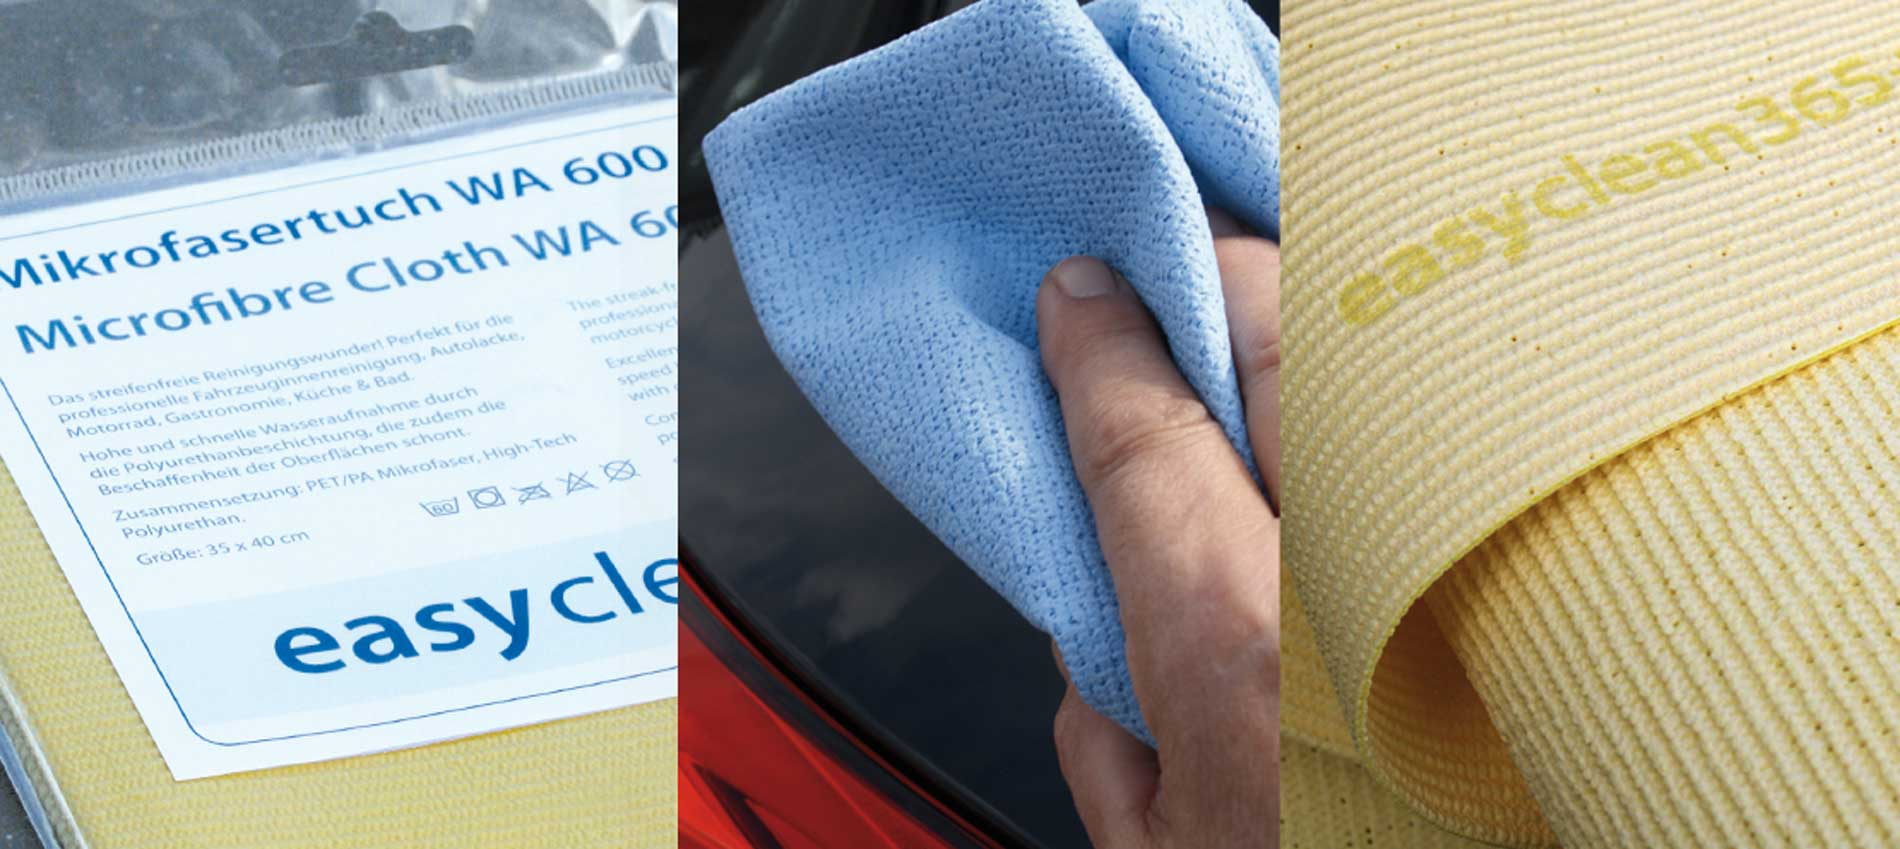 """easyclean365+ microfibre cloths by R+M / Suttner. According to the principle """"completely clean with only one wipe""""."""